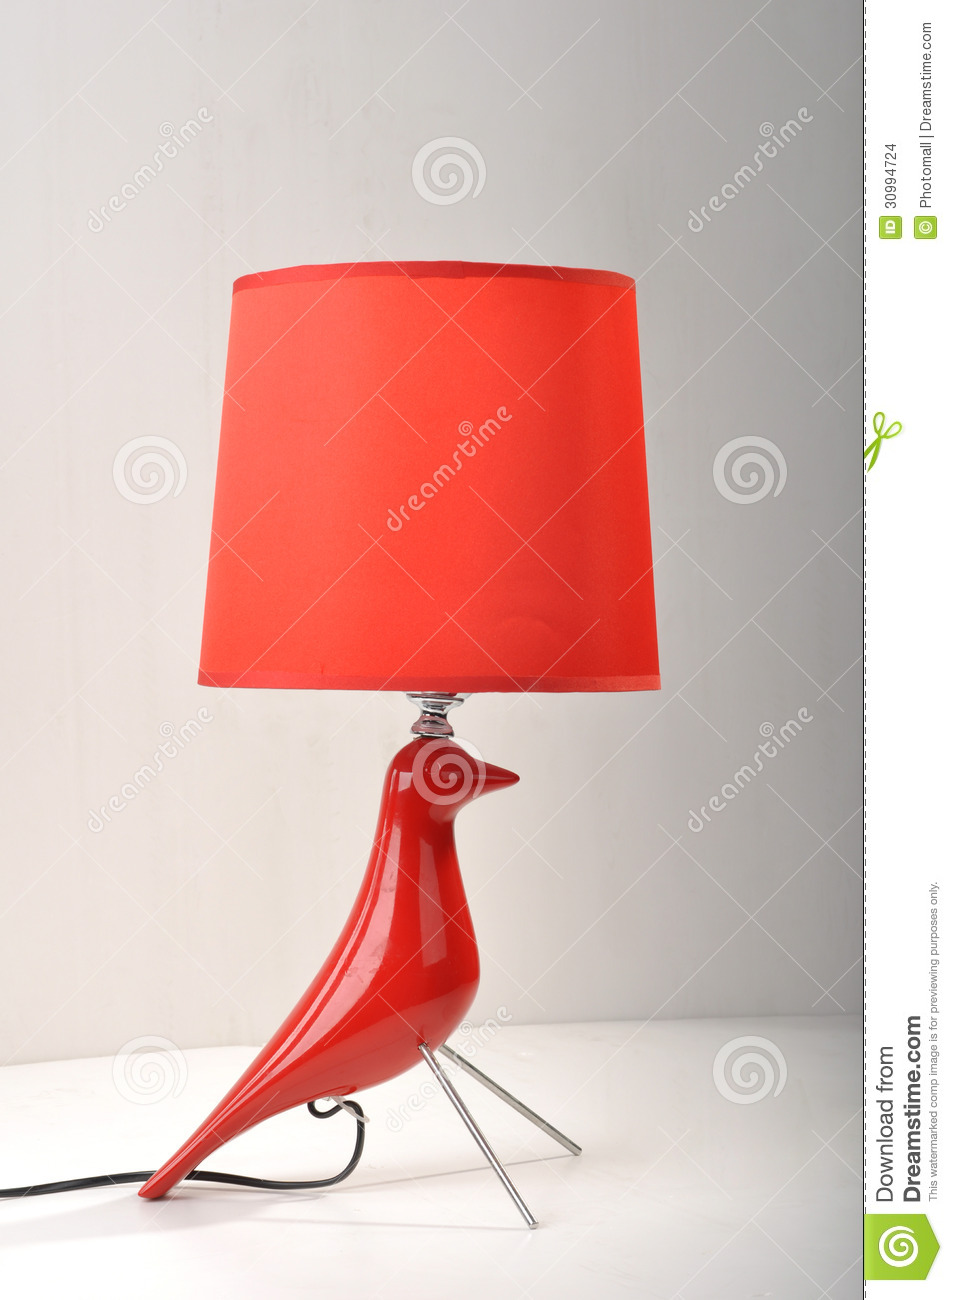 Romantic Christmas gift,red Desk lamp, table light,Home Furnishing decoration Romantic Christmas gift,Holiday gift Valentine Gift